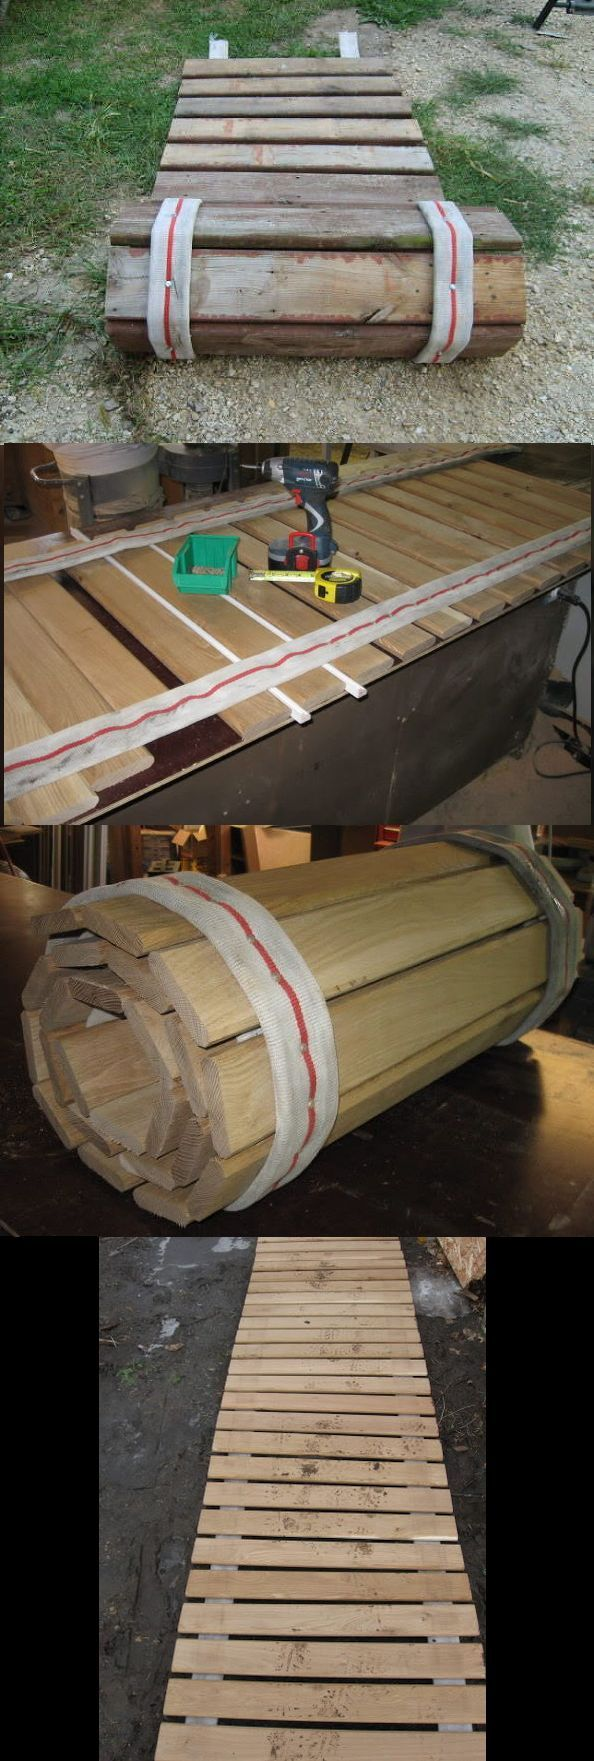 Roll-up sidewalk made from pallet wood and old fire hose. Great for rainy season or after a flood: Compilation Pic.